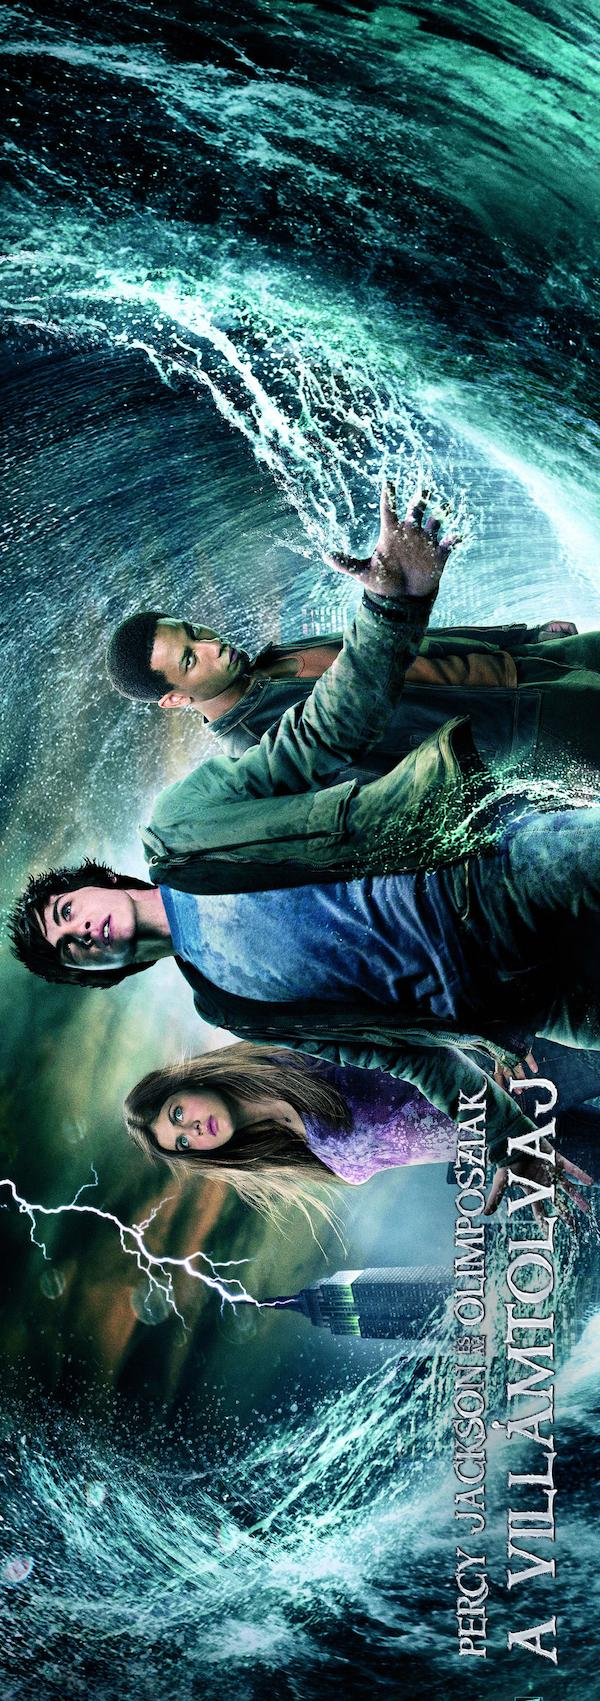 Percy Jackson The Olympians The Lightning Thief 2010 Movie Posters